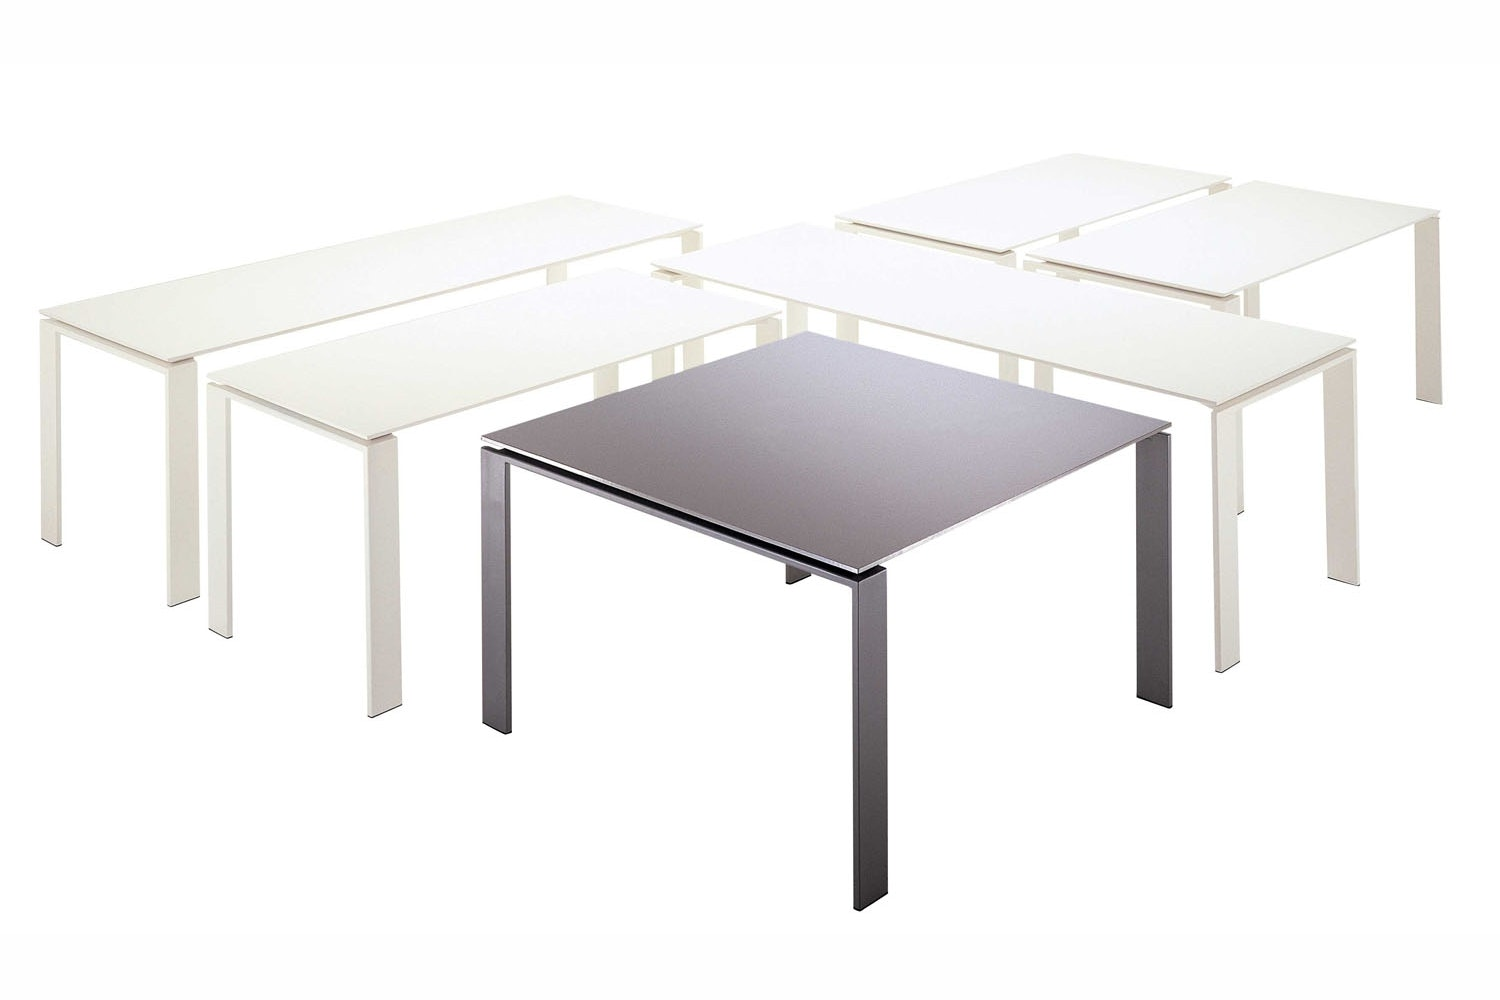 Four Aluminium Table by Ferruccio Laviani for Kartell